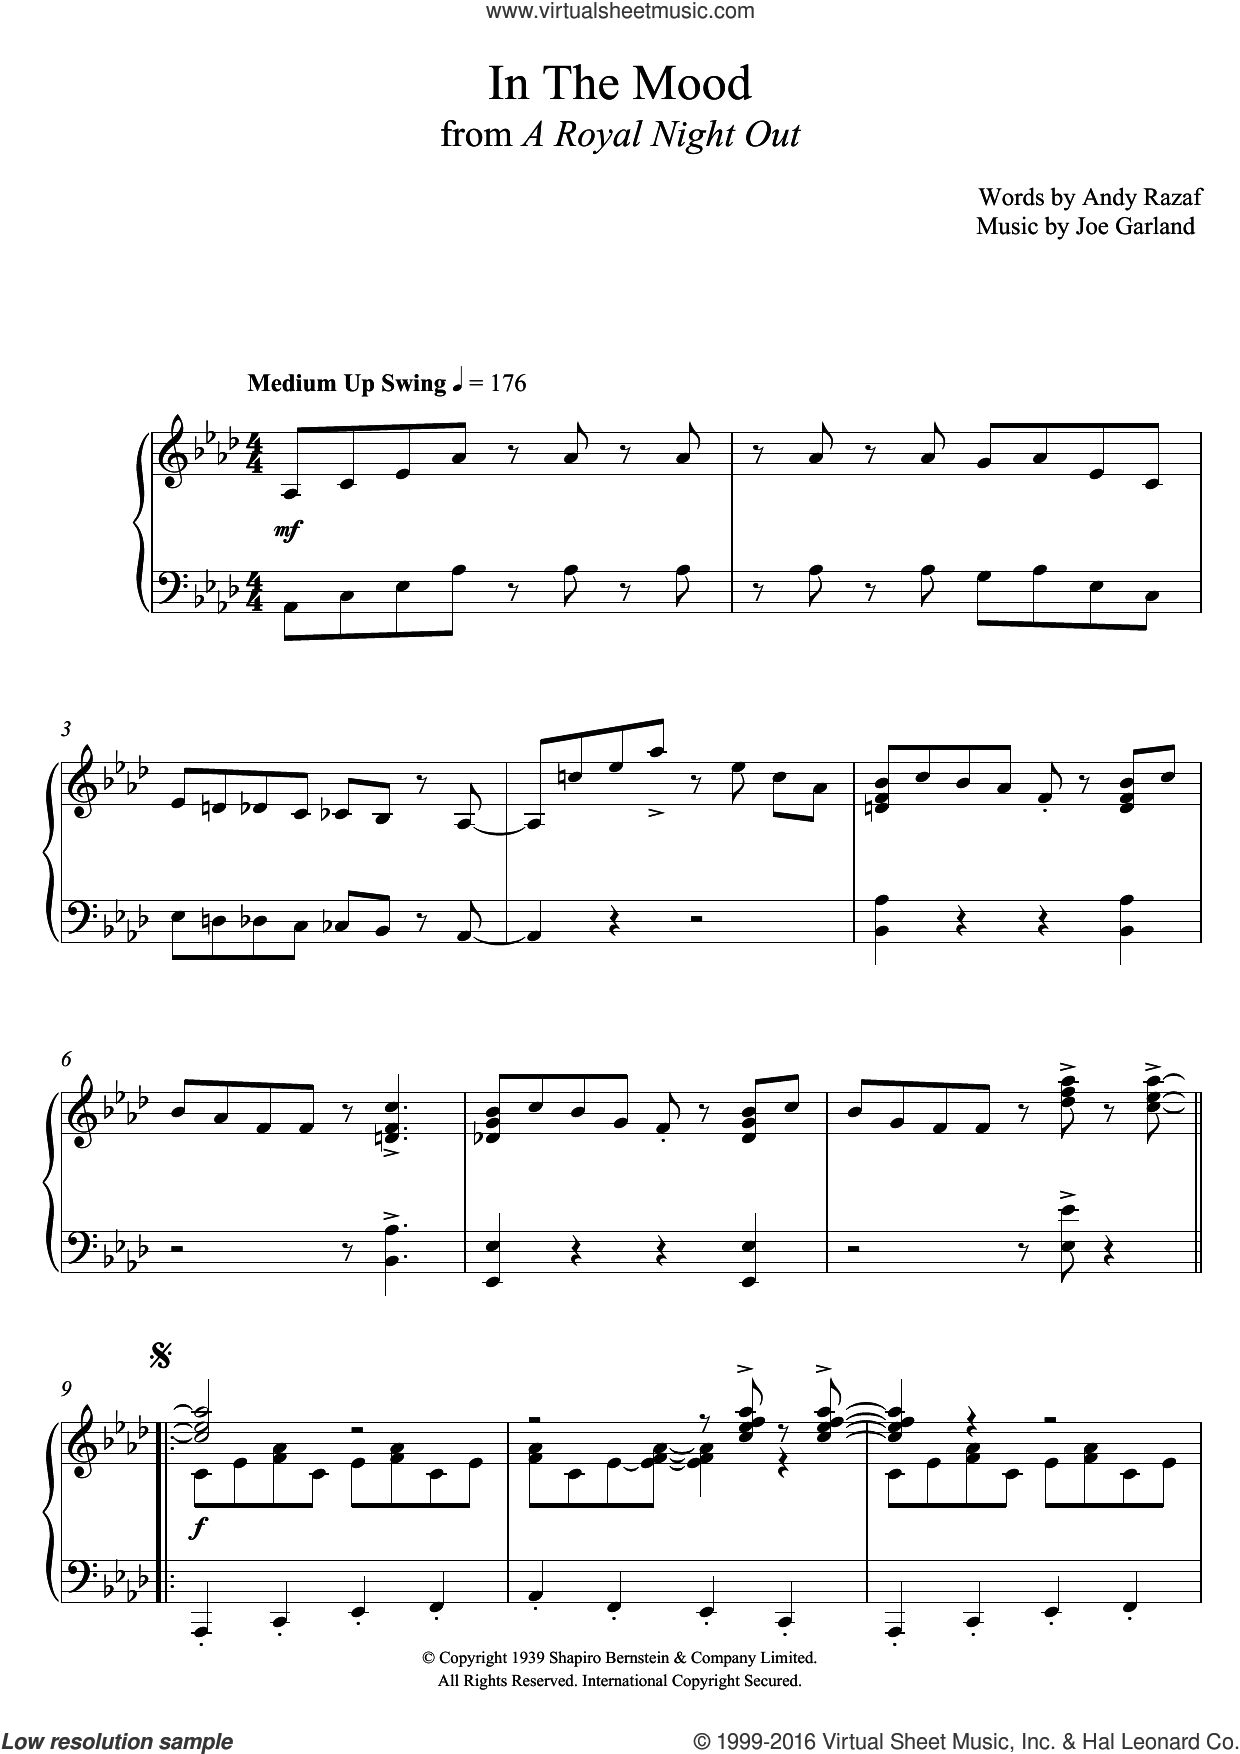 In The Mood sheet music for piano solo by Paul Englishby, Andy Razaf and Joe Garland, intermediate skill level